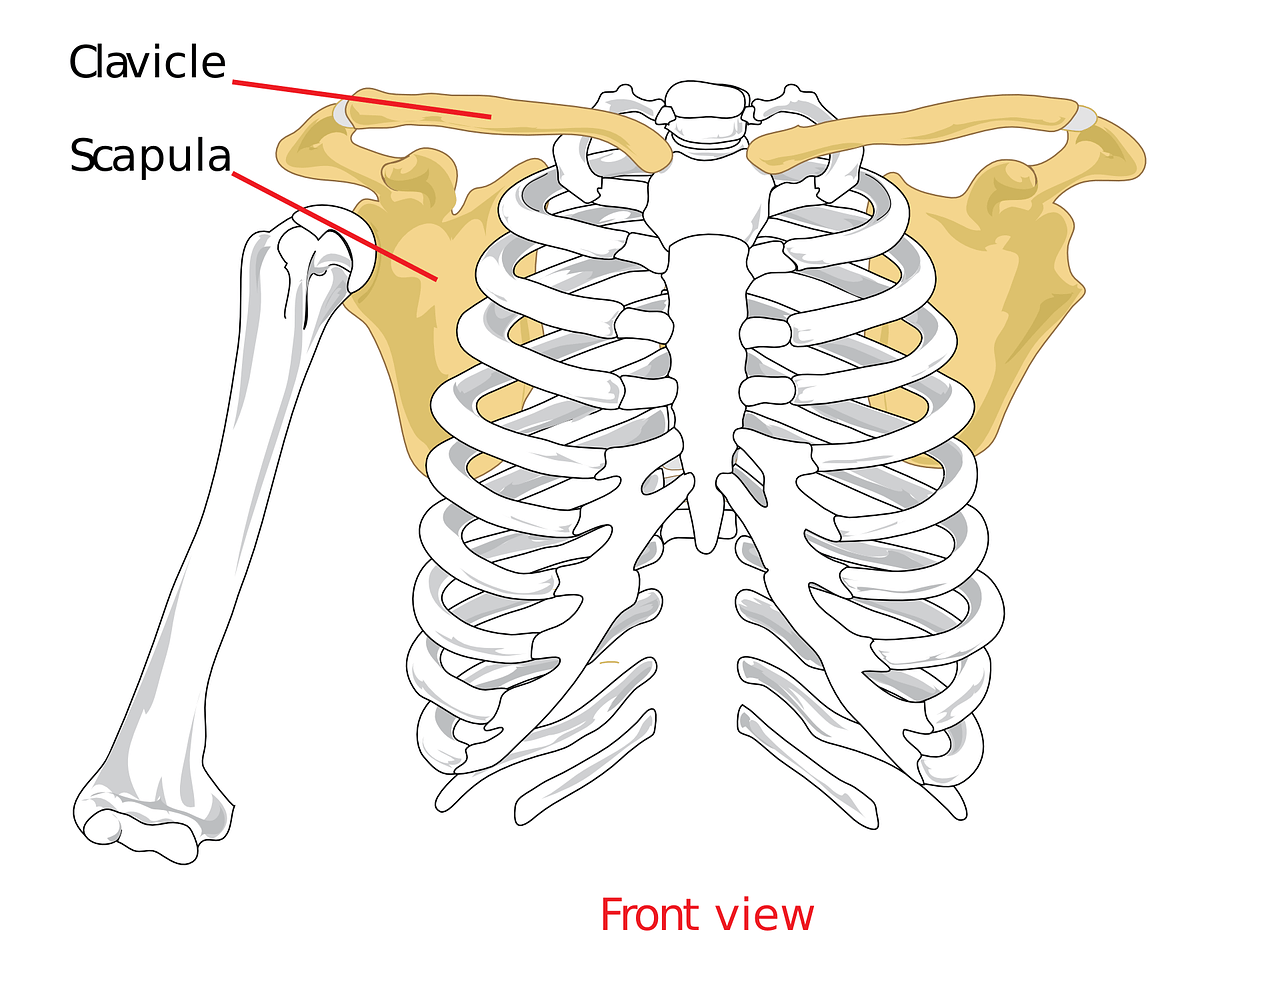 clavical-41577_1280